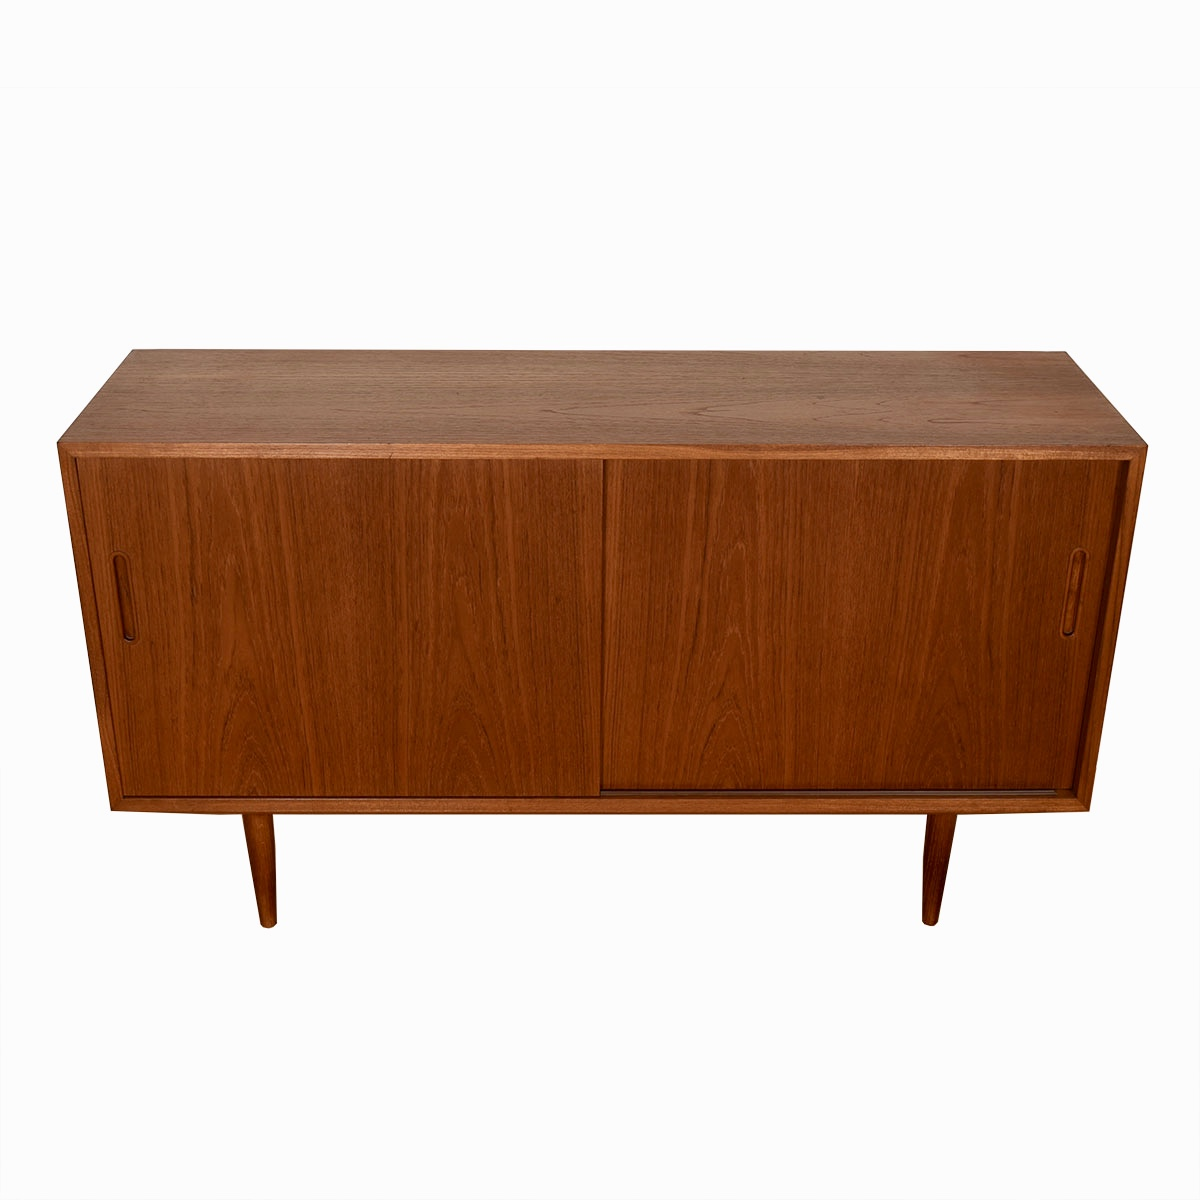 Condo-Sized 55″ Sideboard / Media Cabinet in Teak